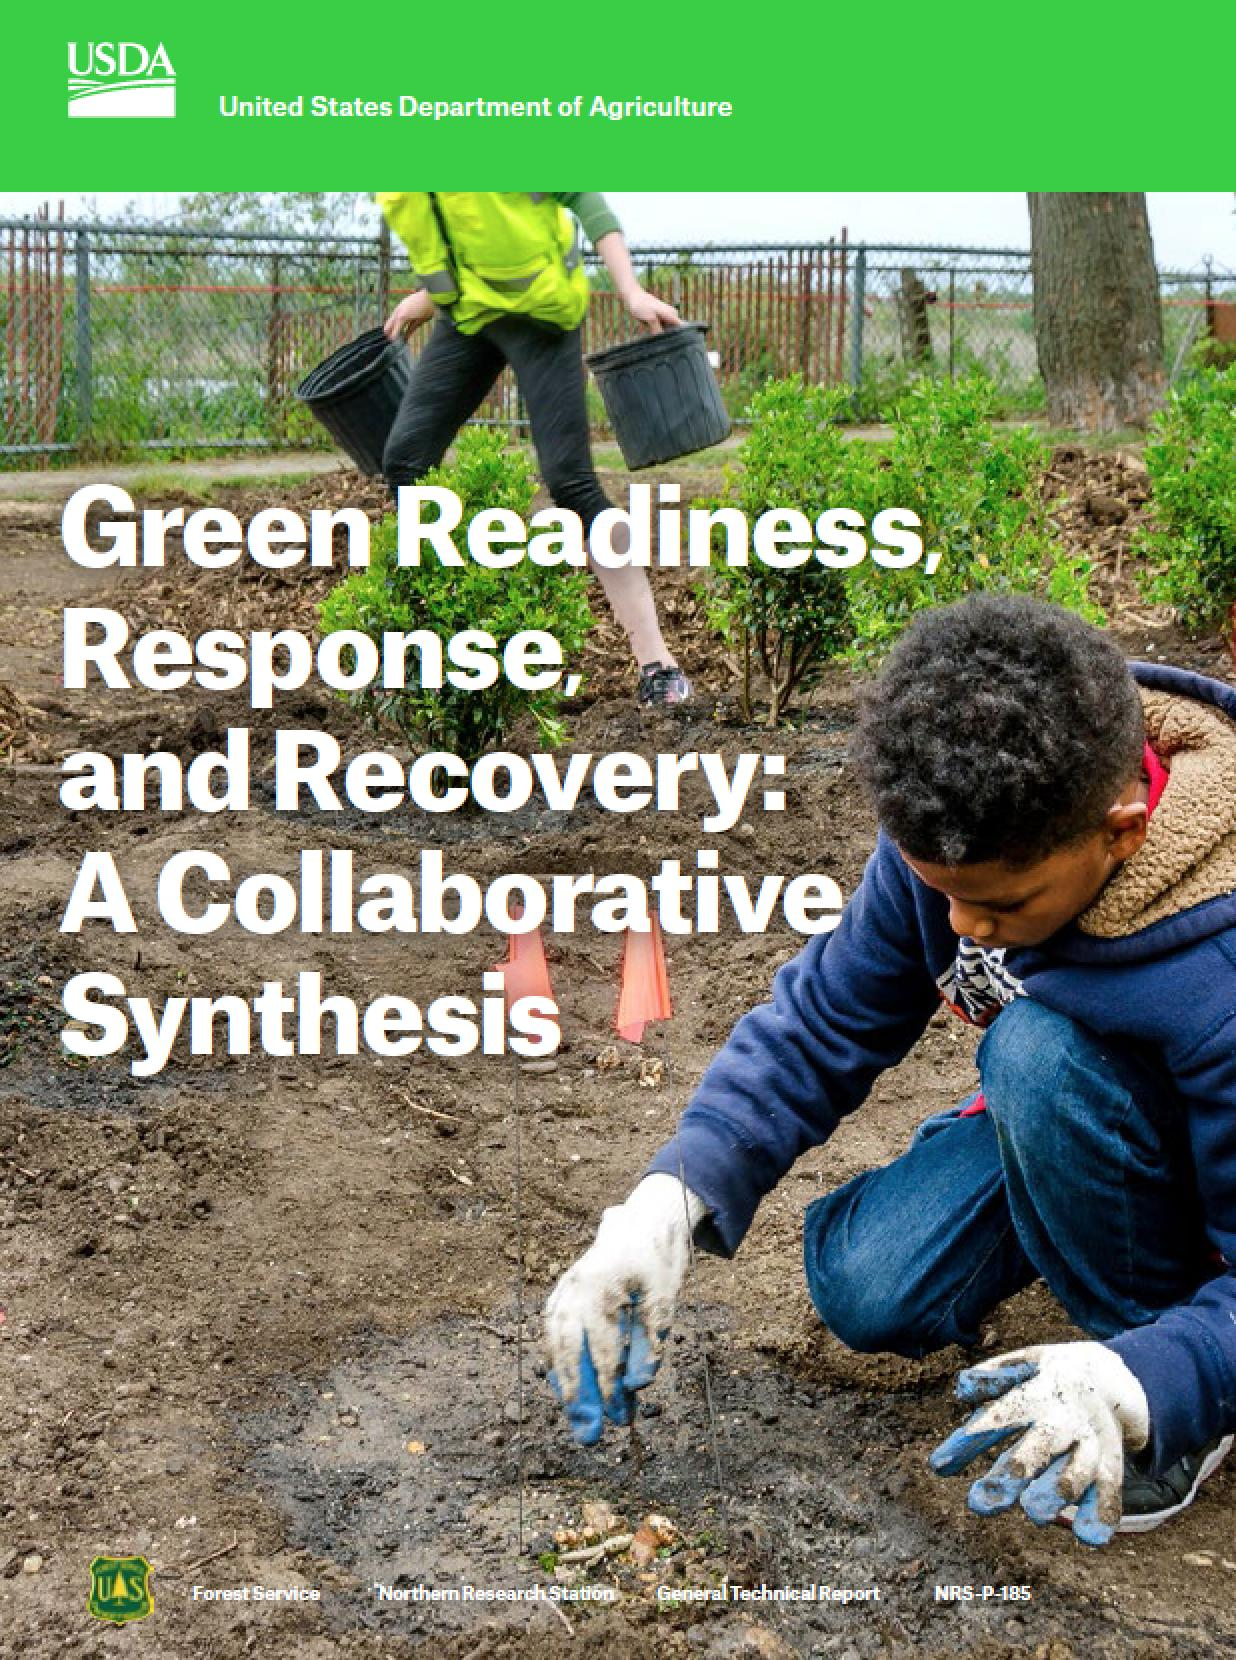 Cover image from publication - Green Readiness, Response, and Recovery